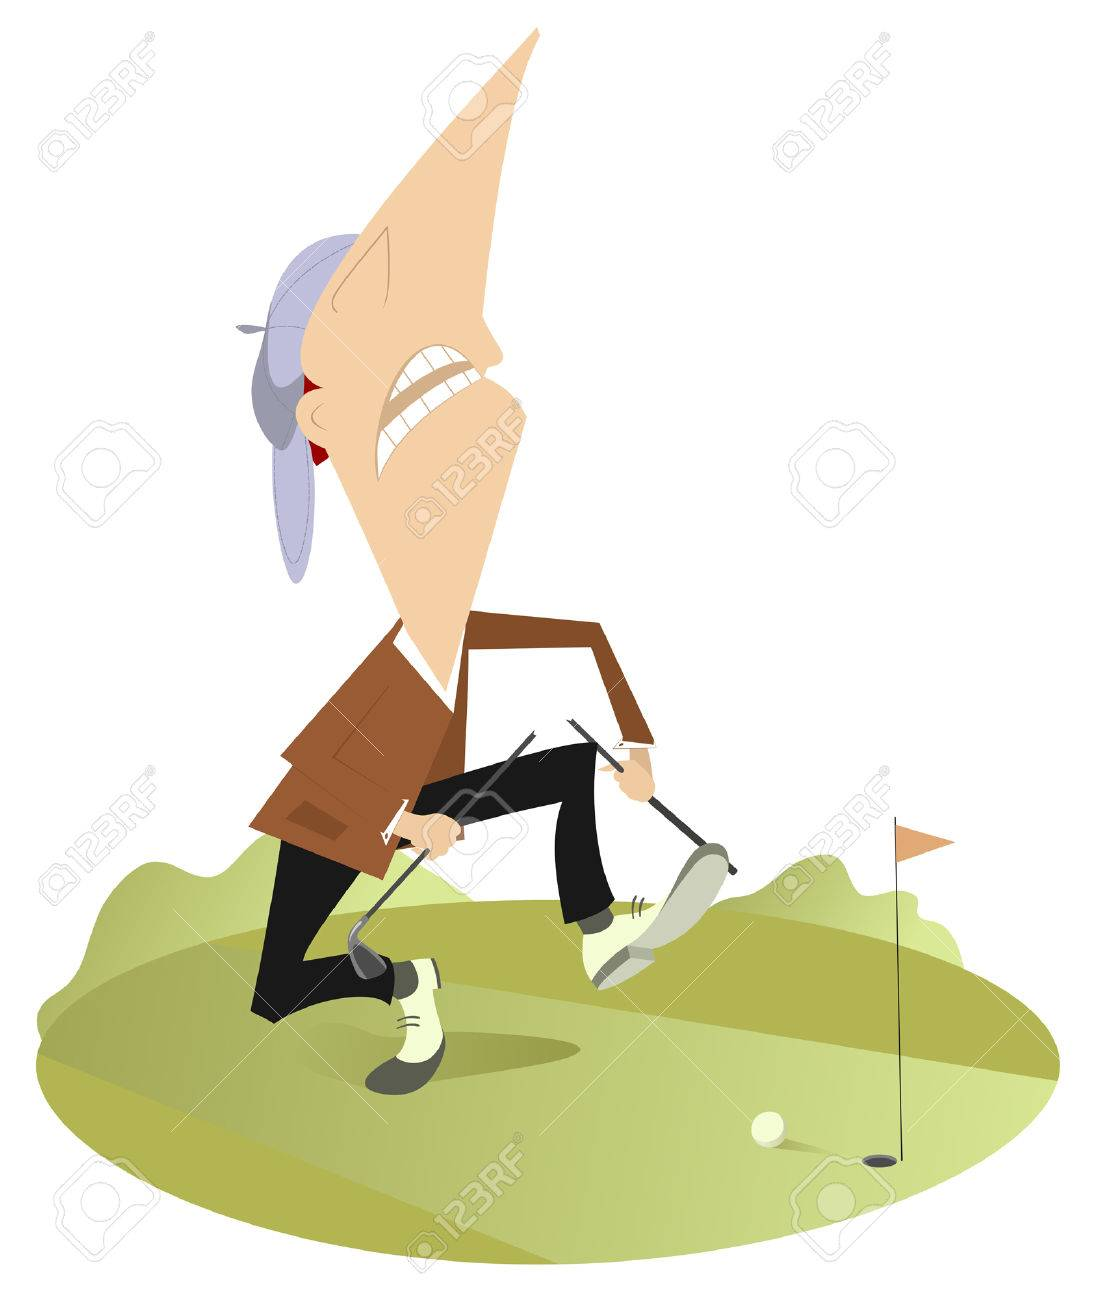 1095x1300 Angry Golfer Has Broken His Golf Club Royalty Free Cliparts